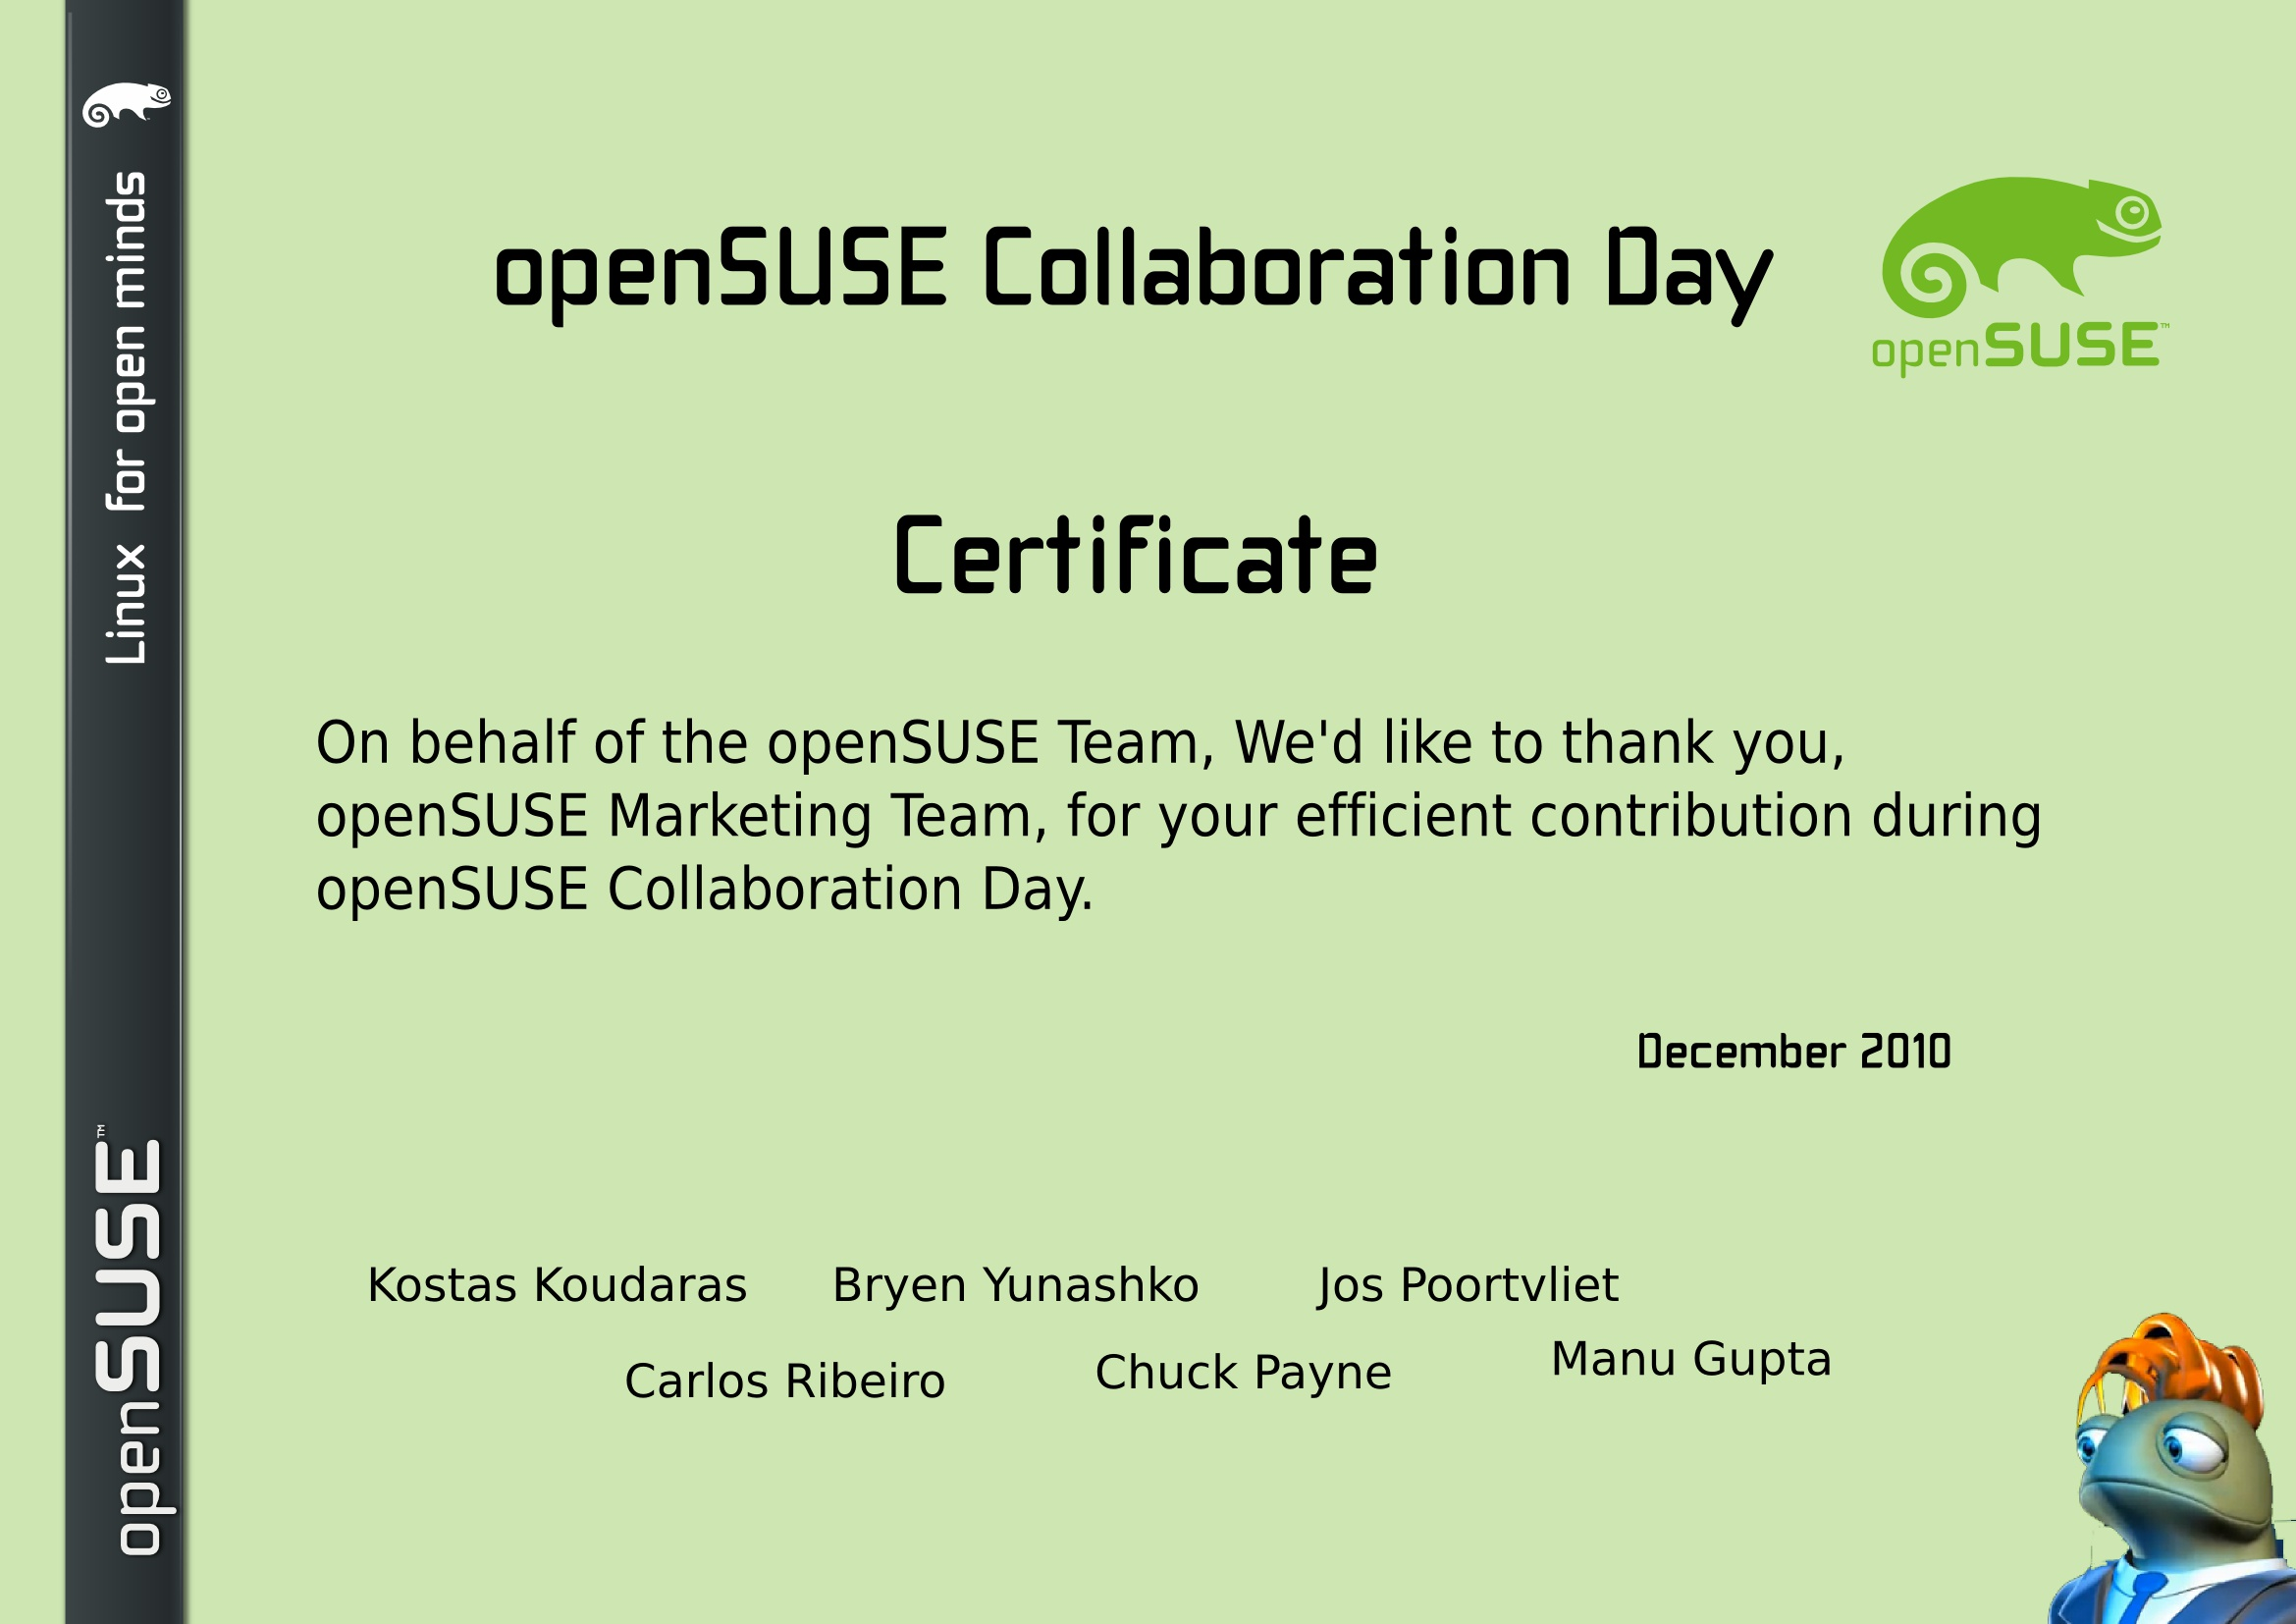 openSUSE Certificate